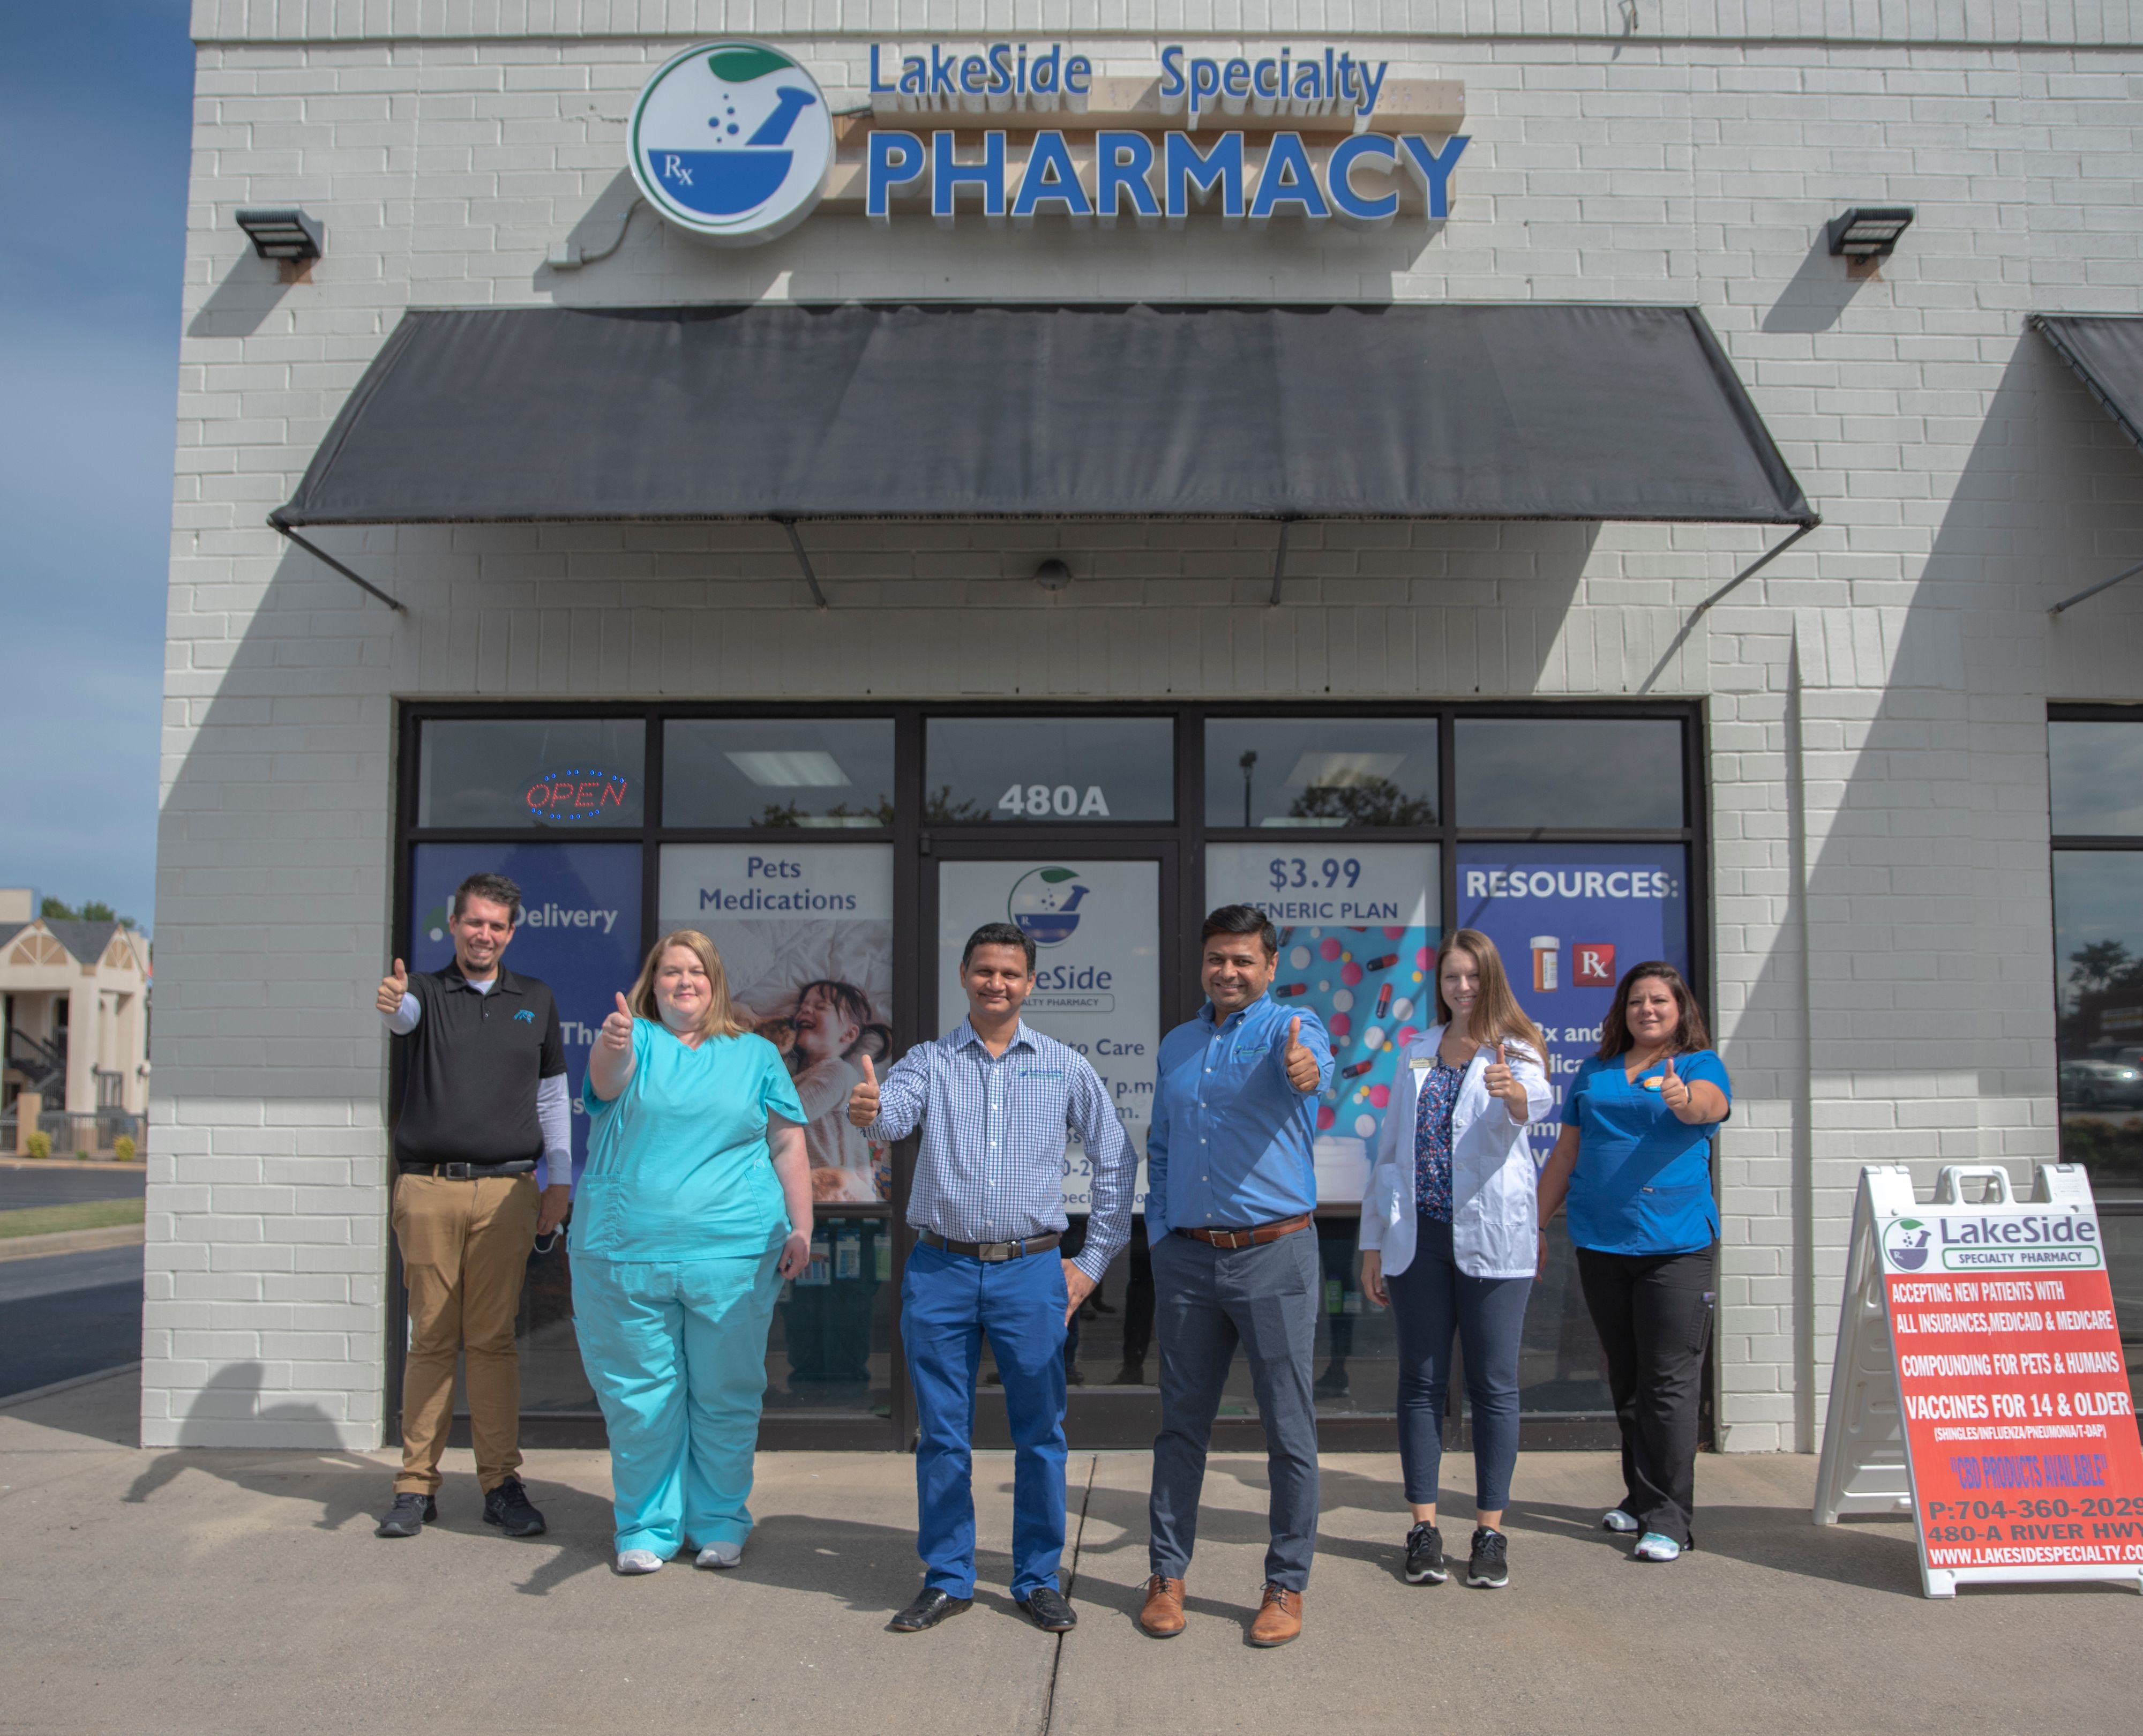 Welcome To Lakeside Specialty Pharmacy